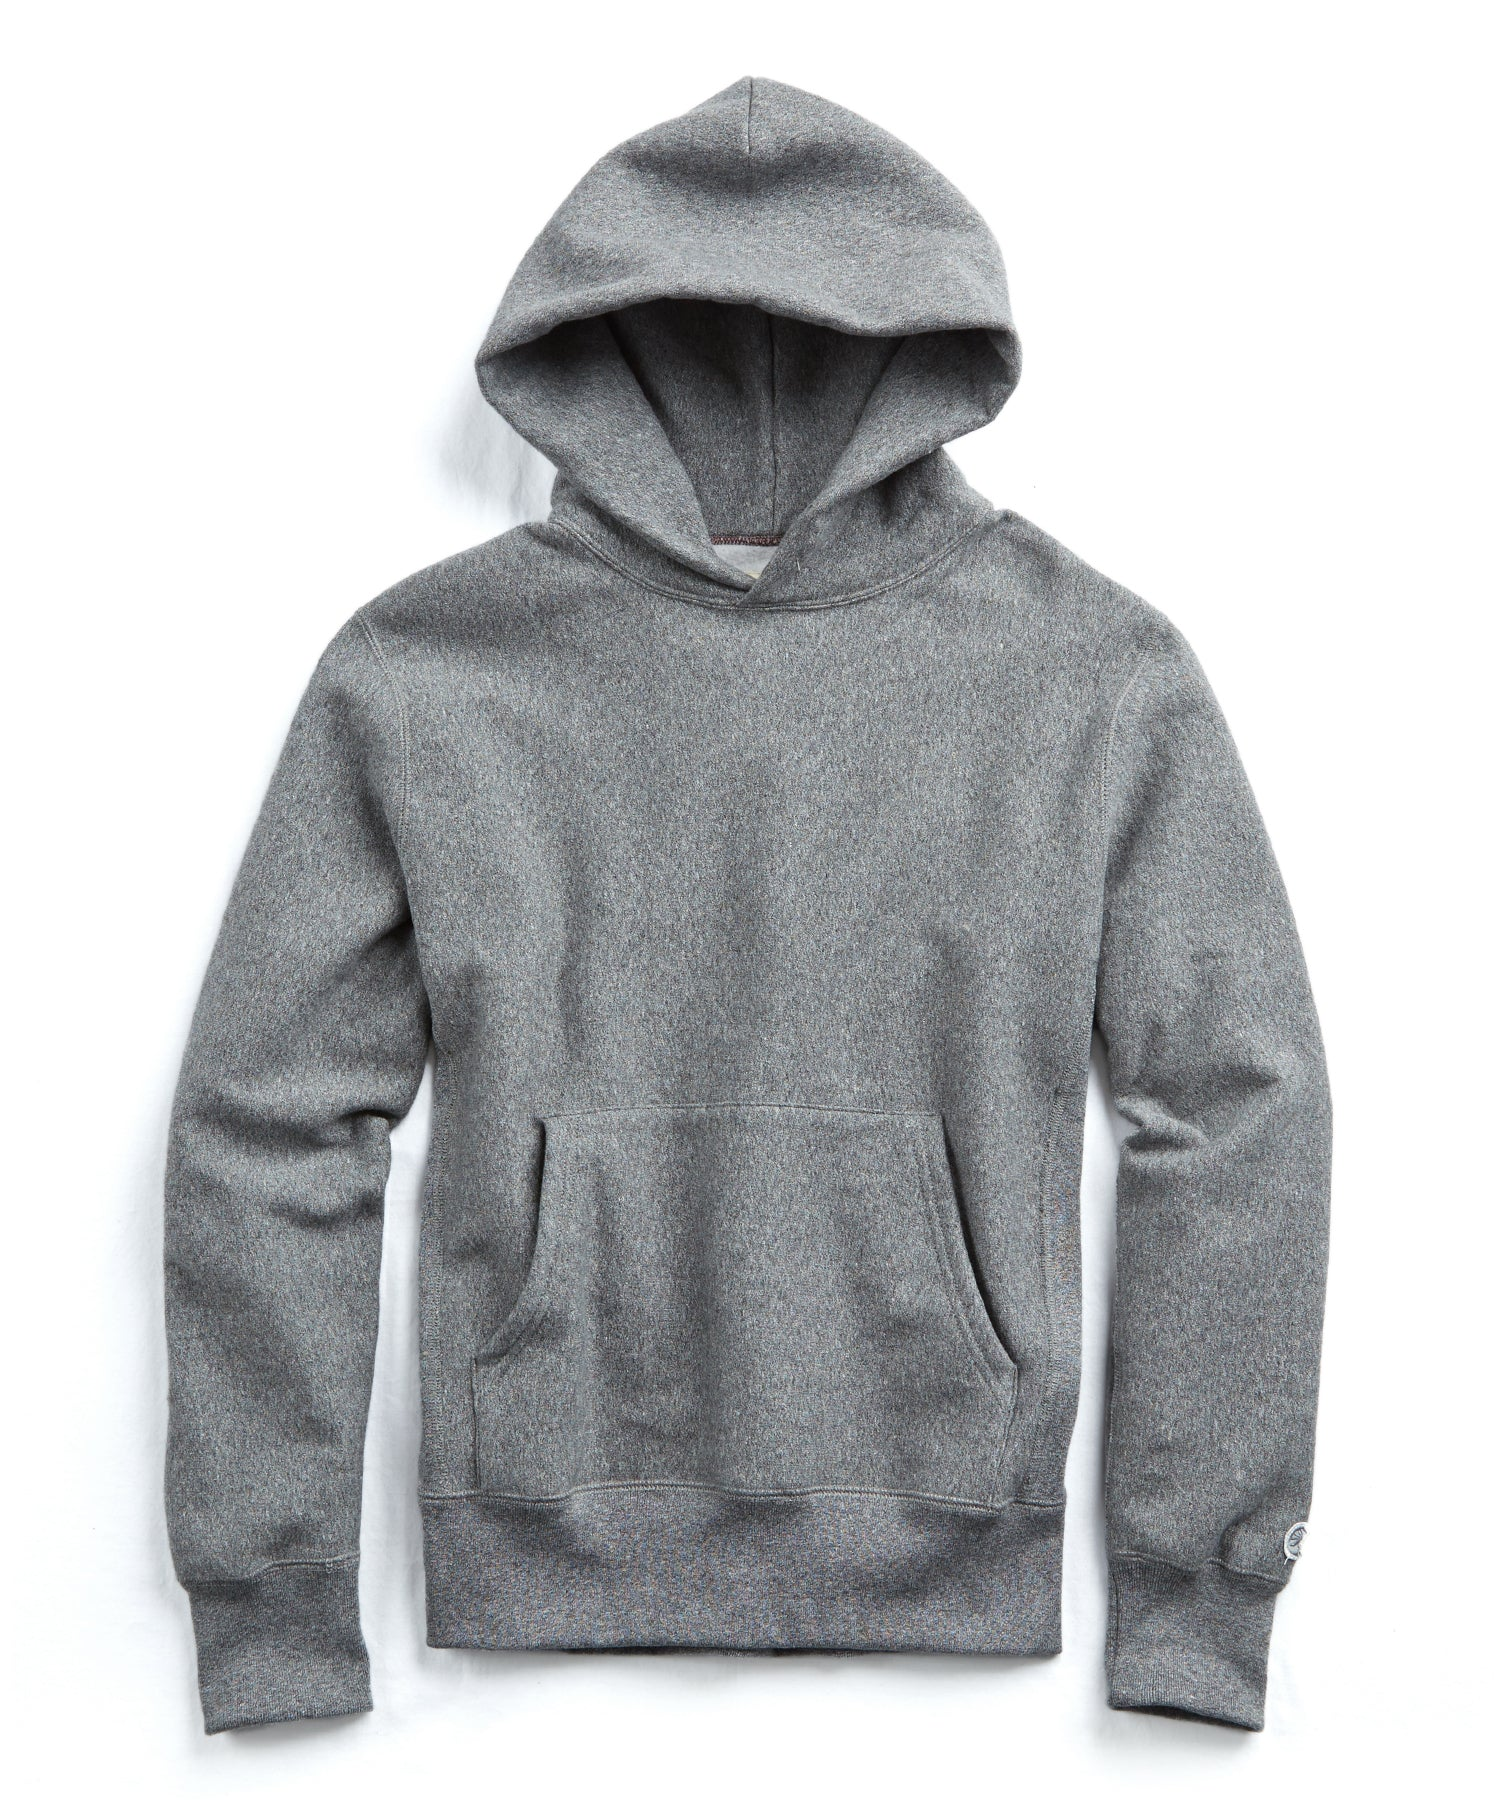 Heavyweight Popover Hoodie Sweatshirt in Salt and Pepper